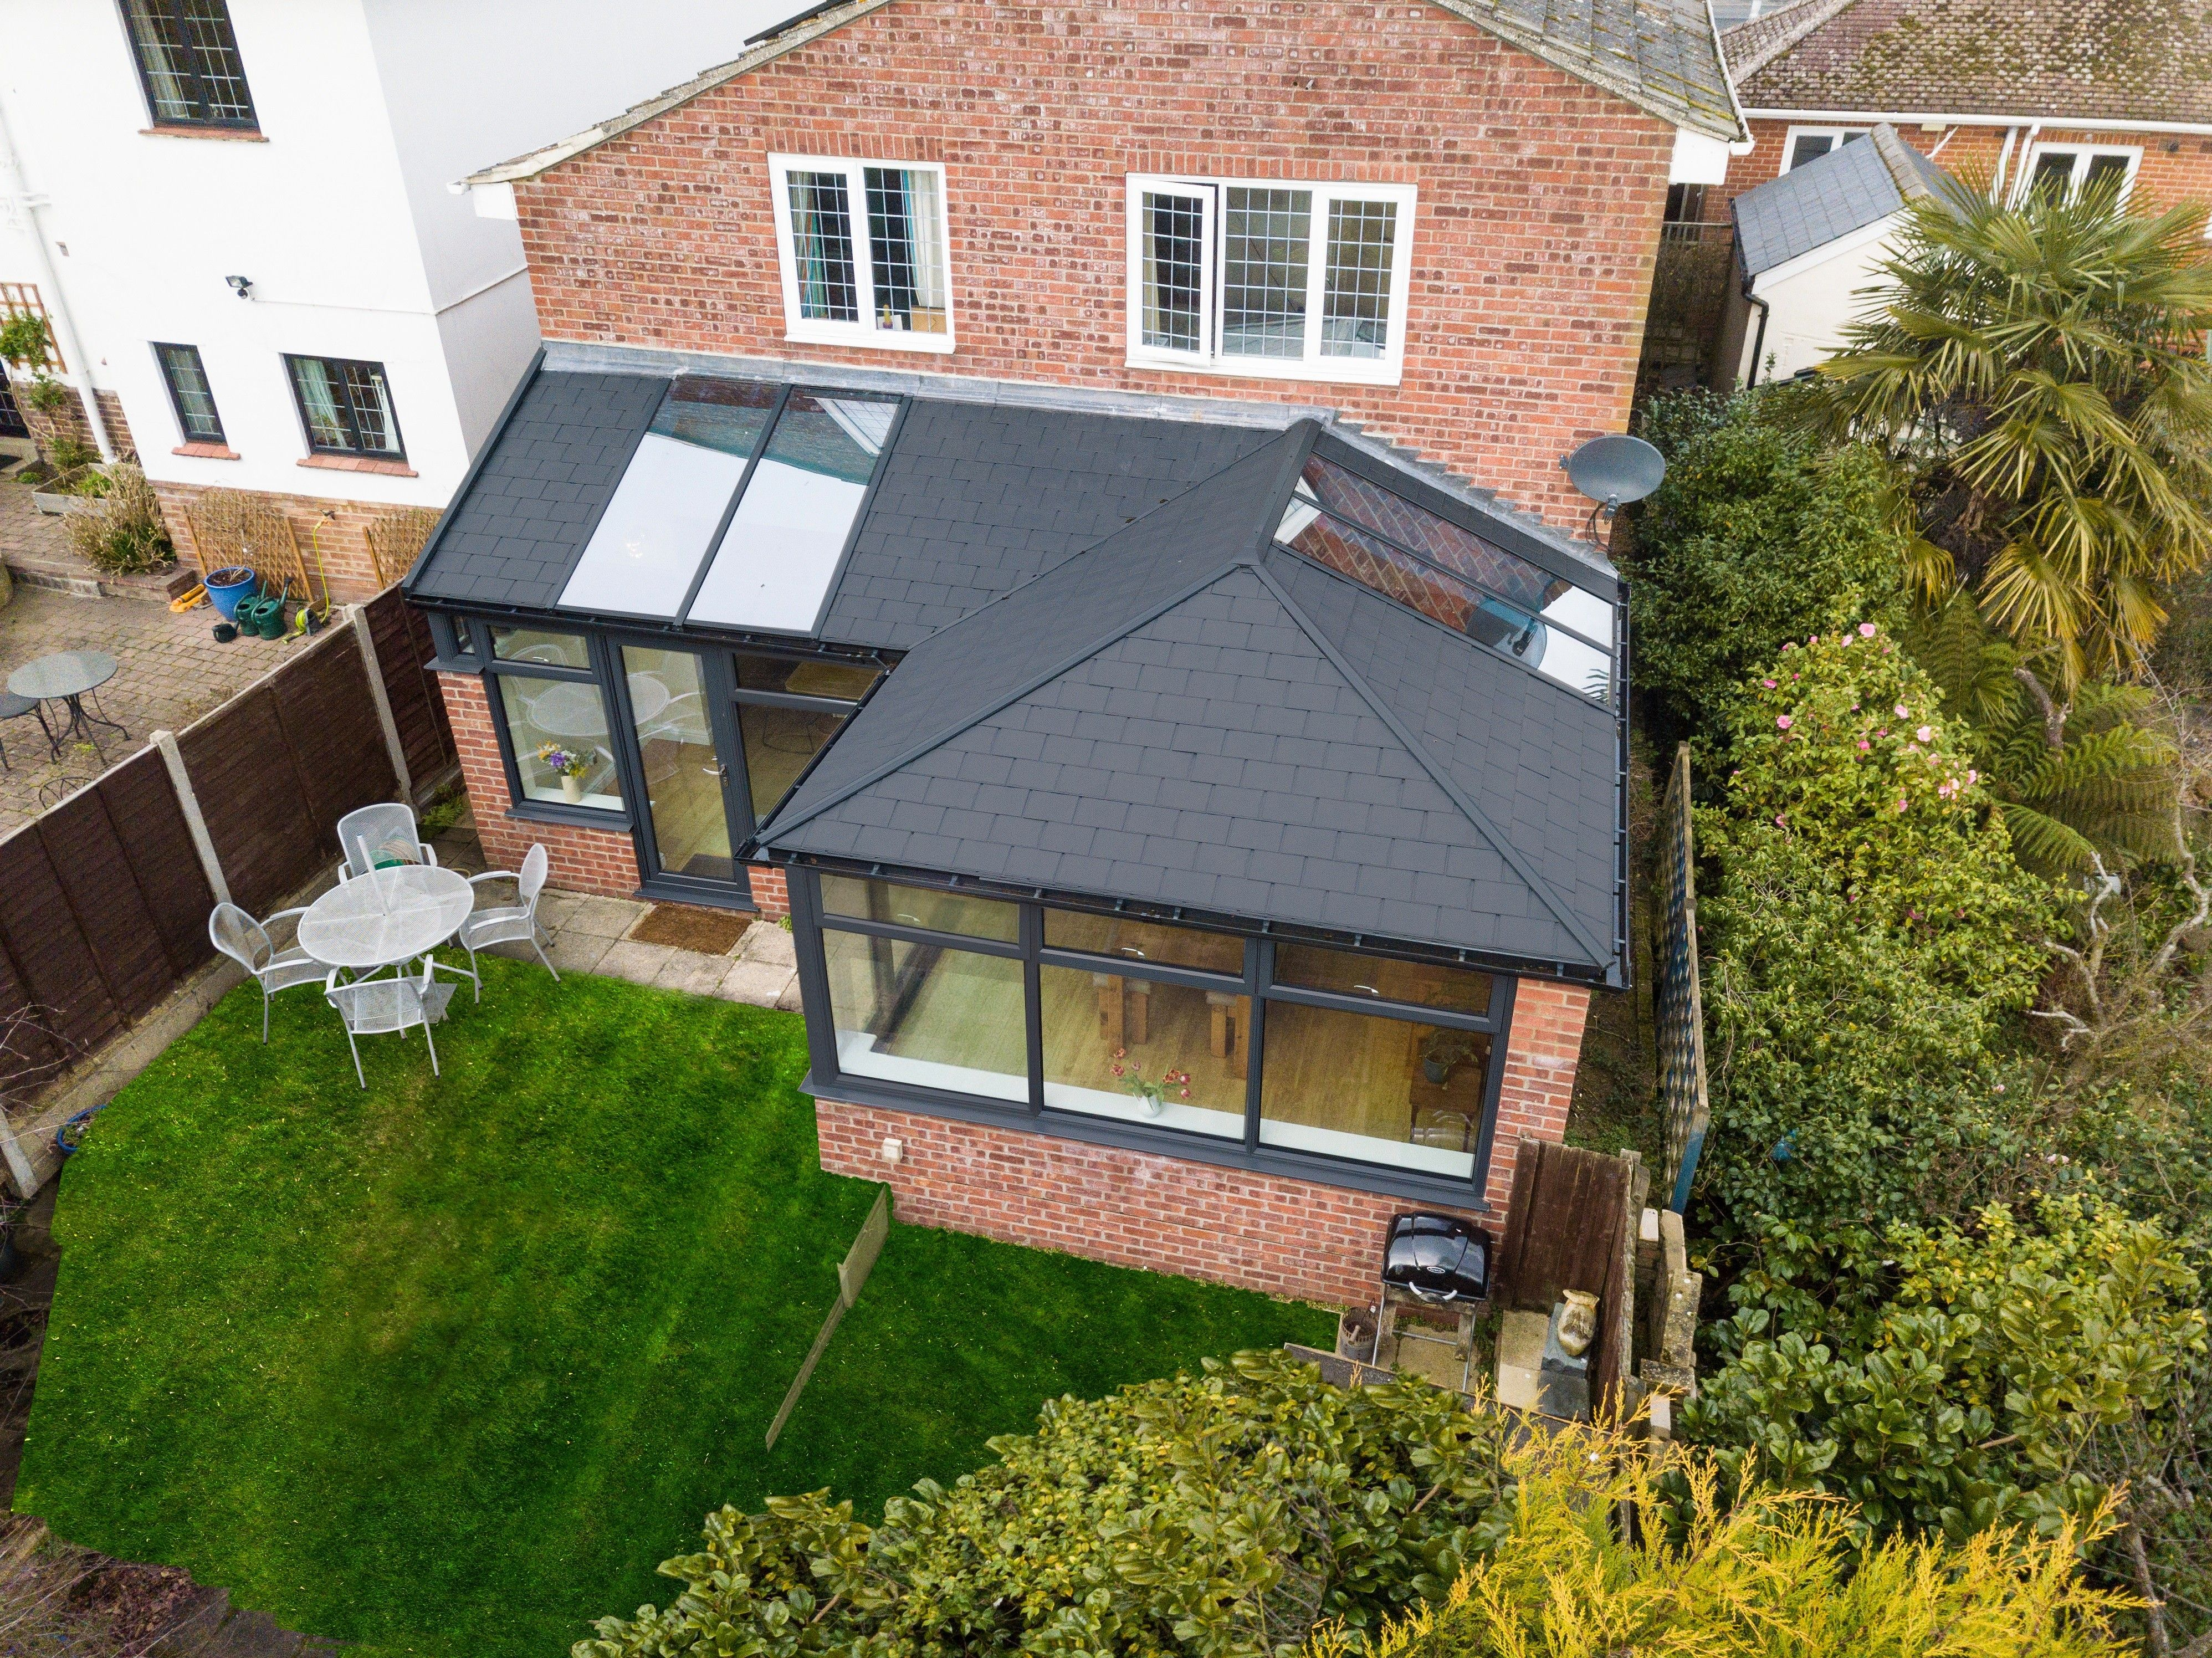 Tiled Conservatory Roof Ultraroof Conservatory Uk Tiled Conservatory Roof Conservatory Roof Conservatory Prices